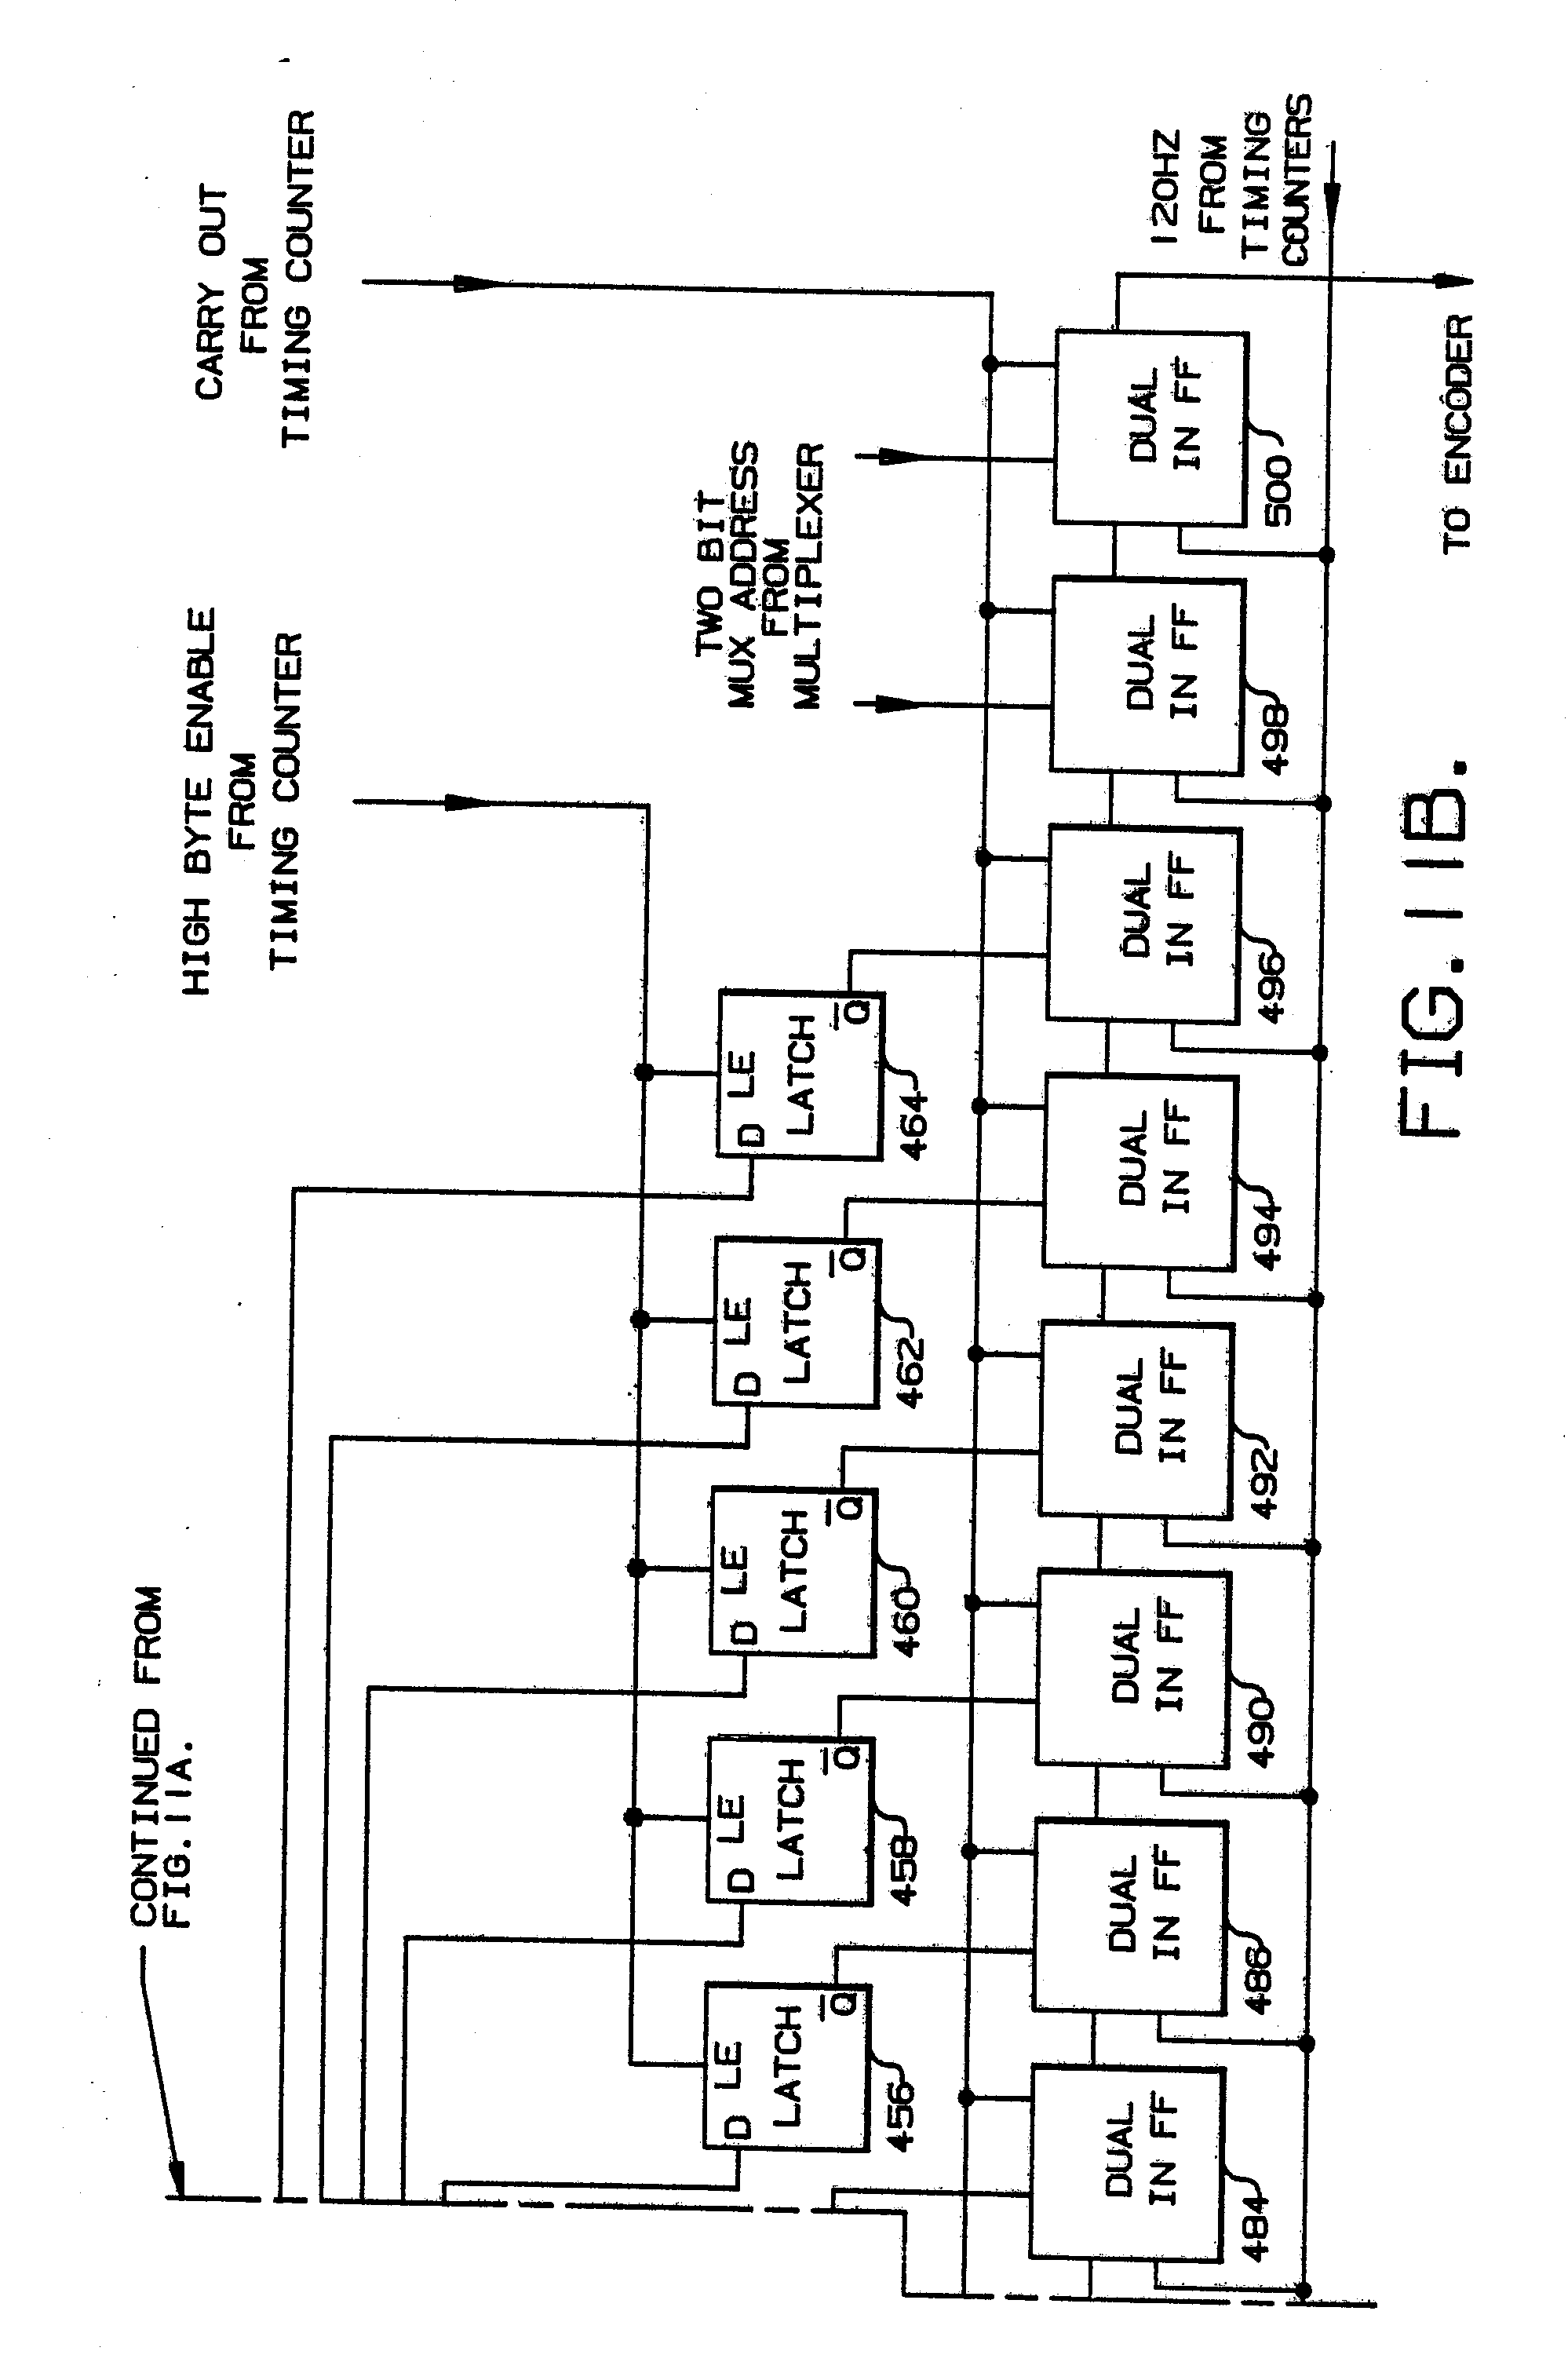 patent ep0268492a2 - a common bus multimode sensor system